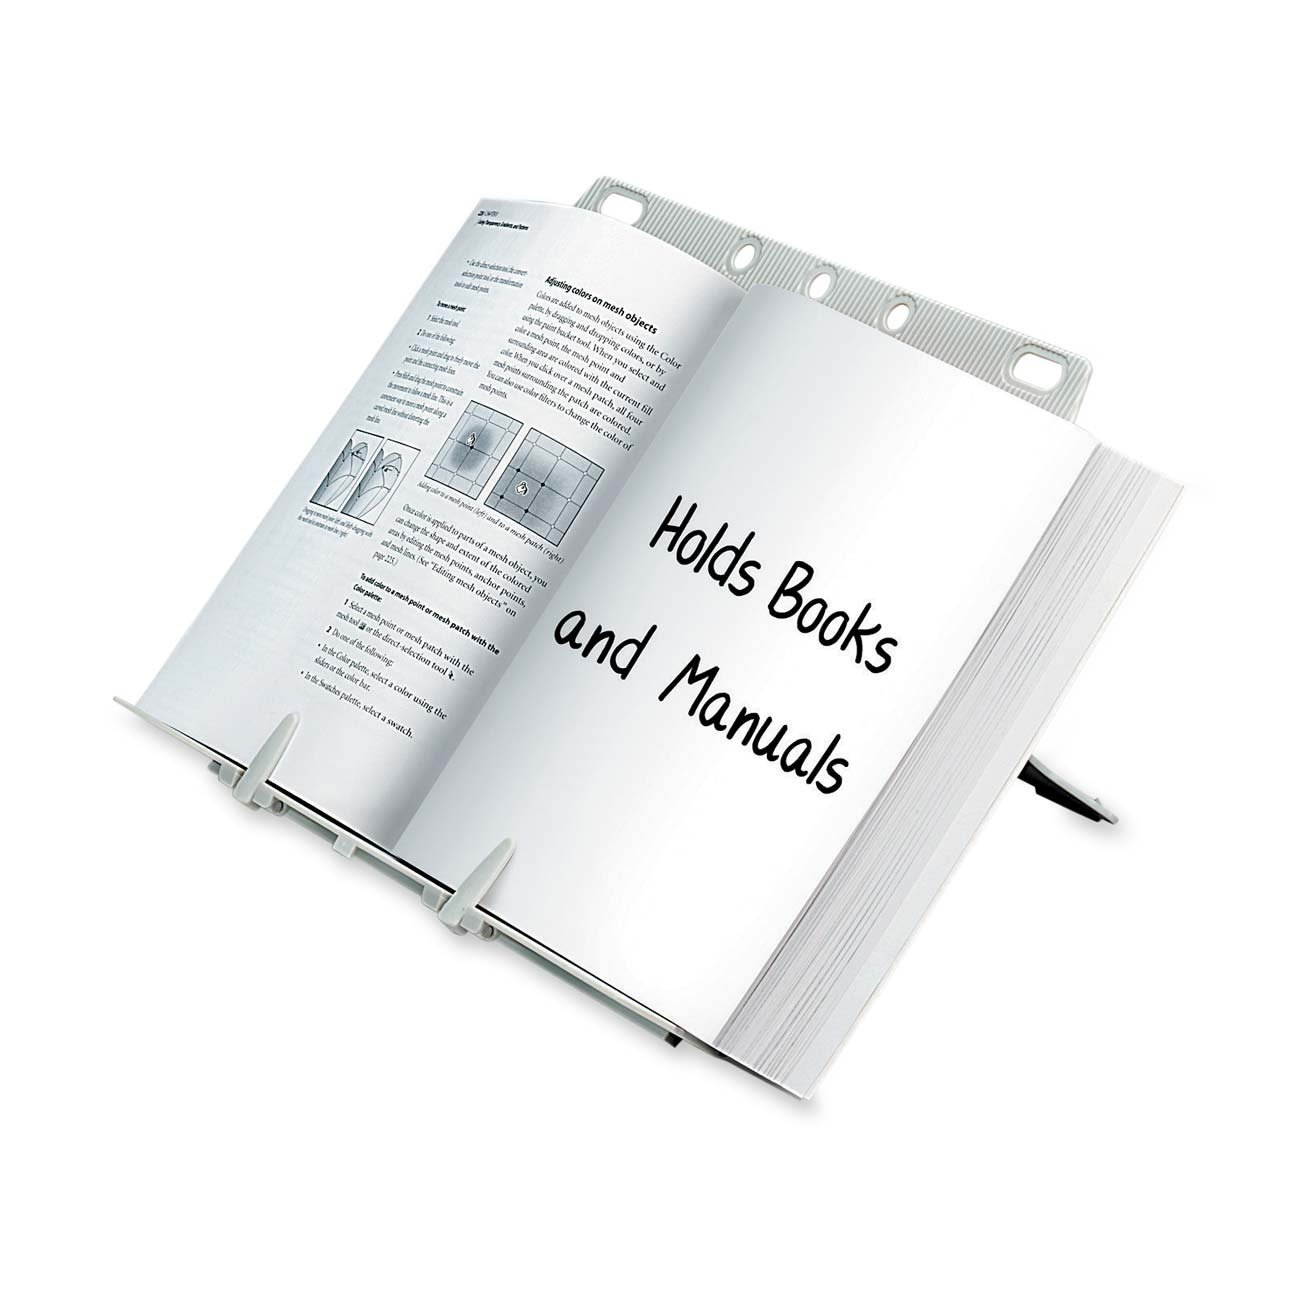 Booklift Copyholder, Platinum (21100), Ideal for e-readers (Kindle, Kindle Fire), tablets (iPad), planners,... by